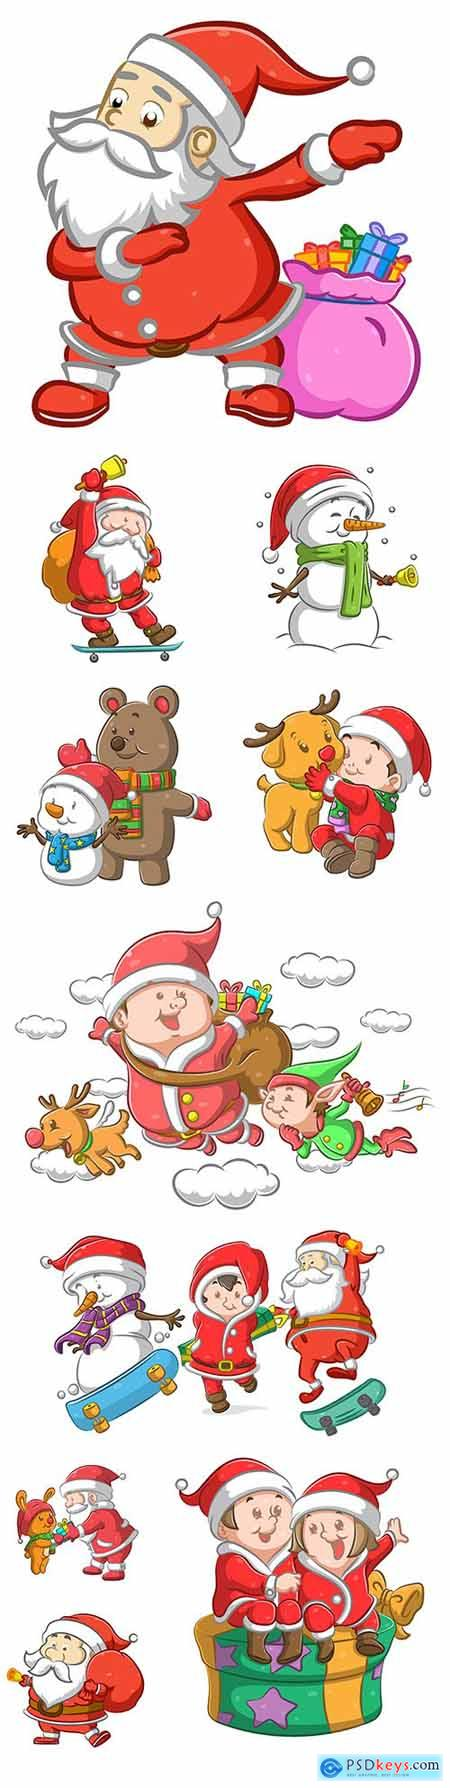 Santa Claus with bag of gifts and snowman with scarf